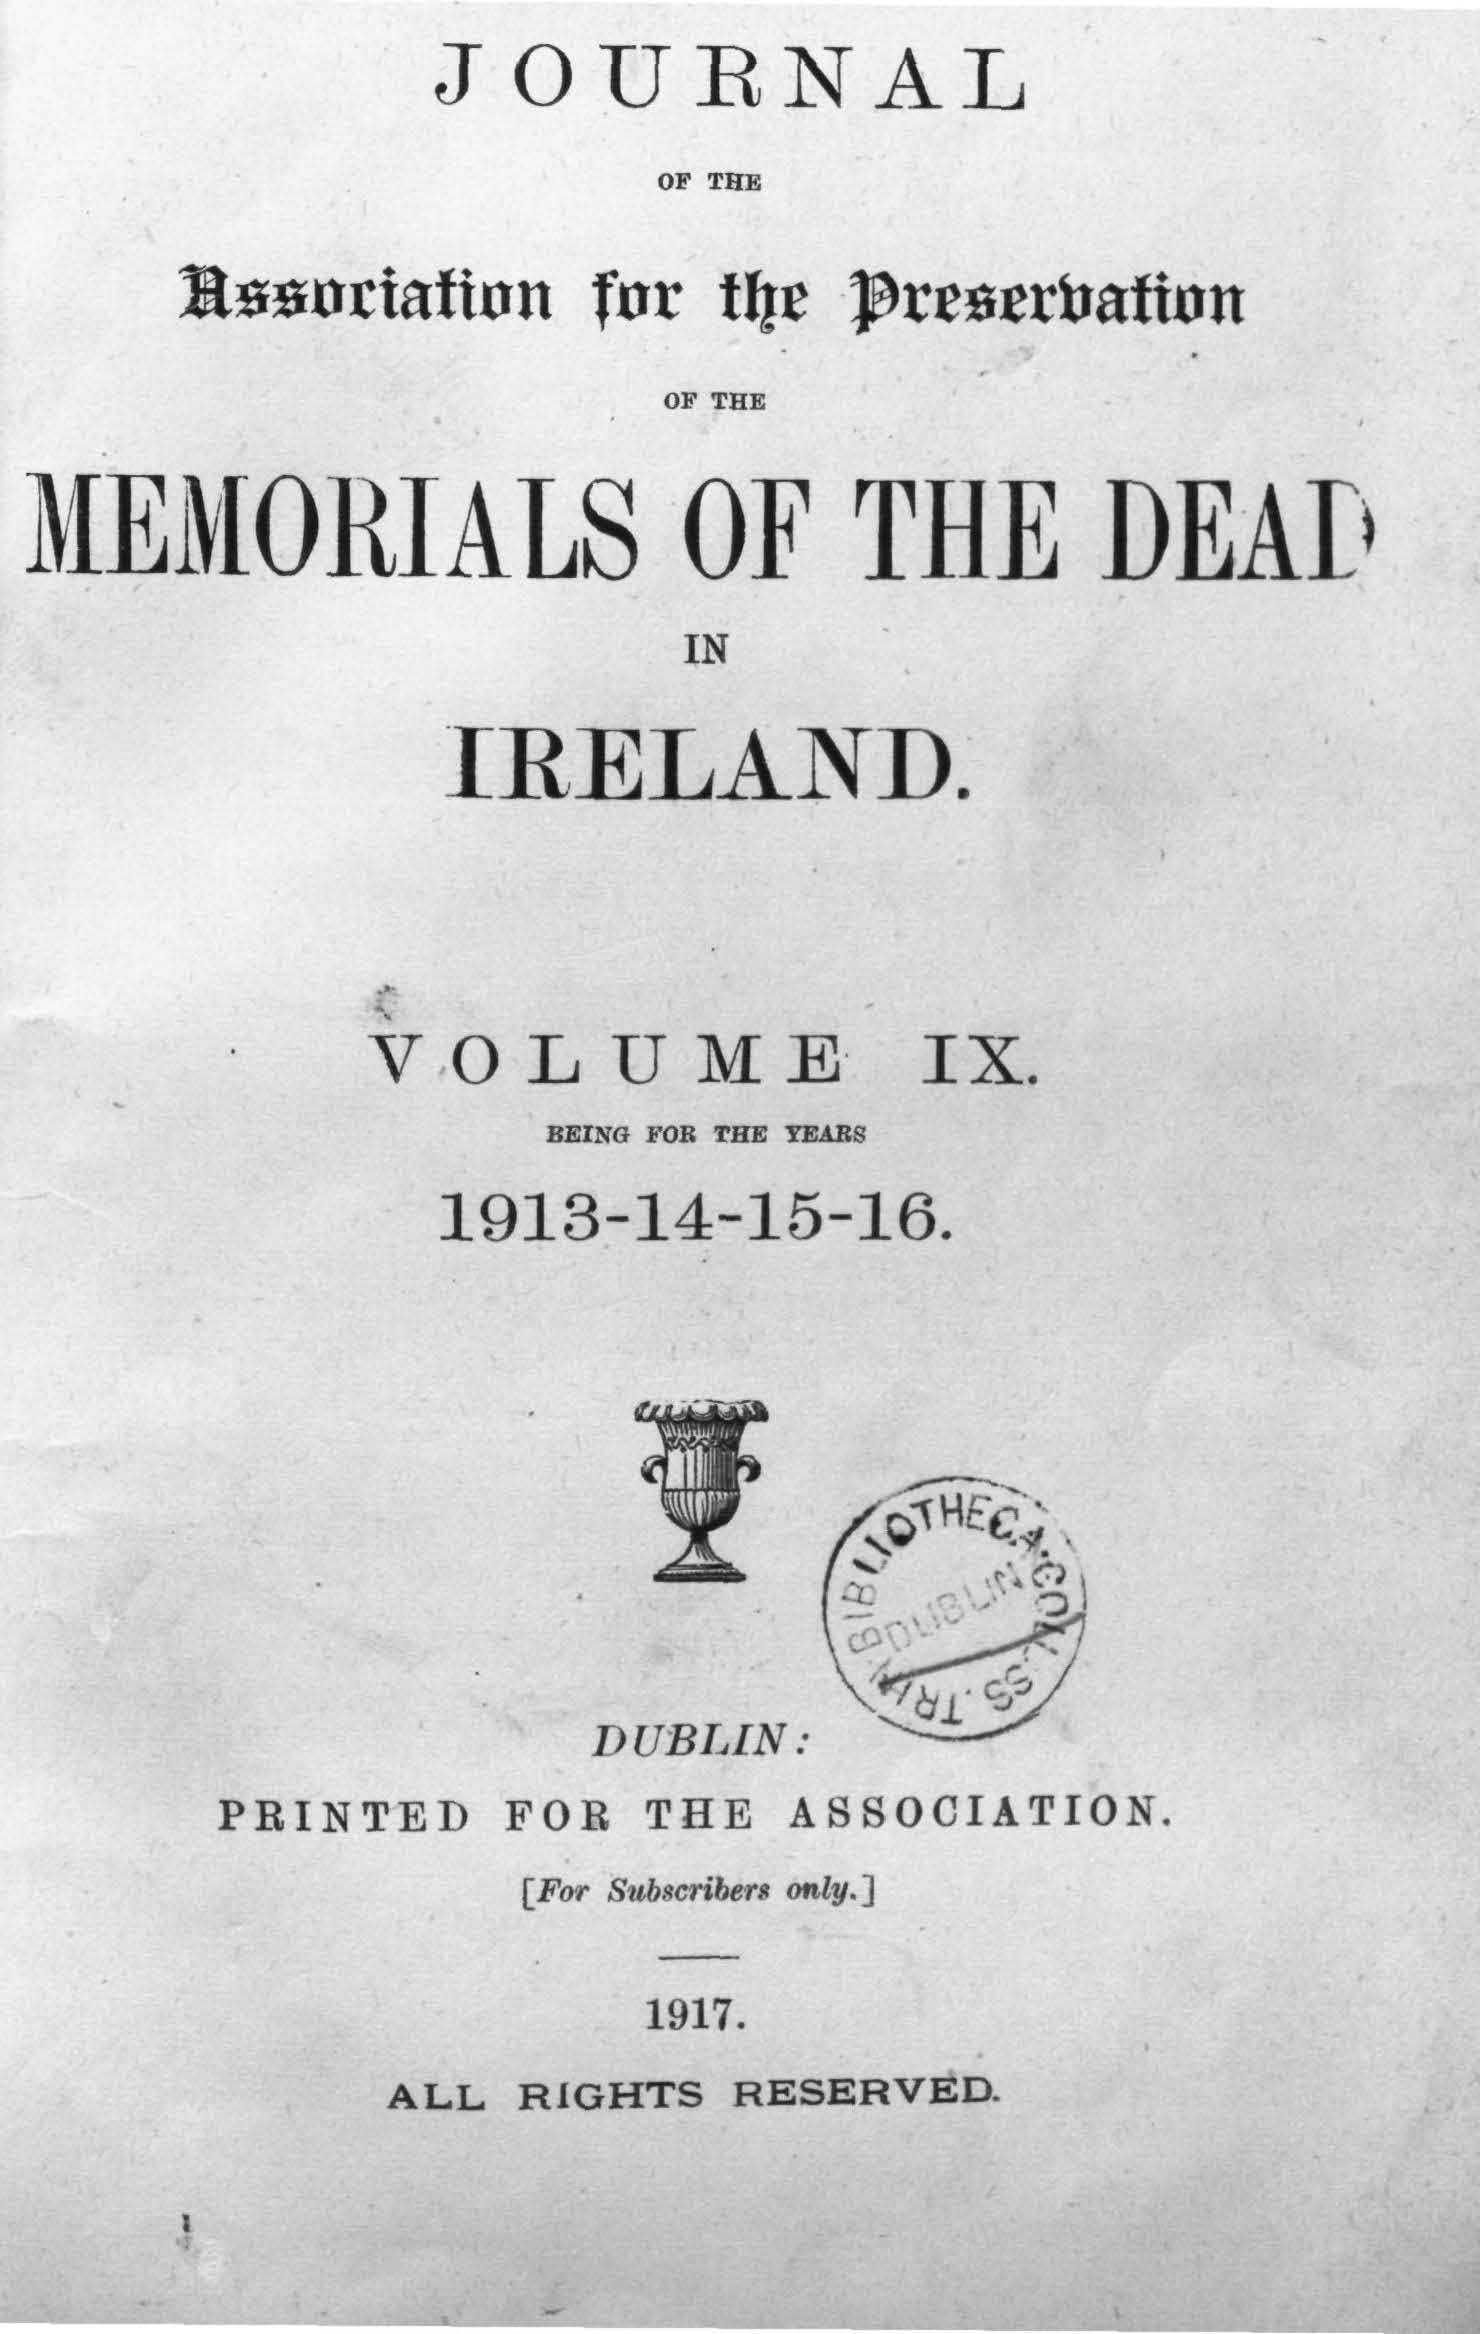 photo of Journal of the Association for the Preservation of the Memorials of the Dead Vol IX for the years 1913-1916. 1917